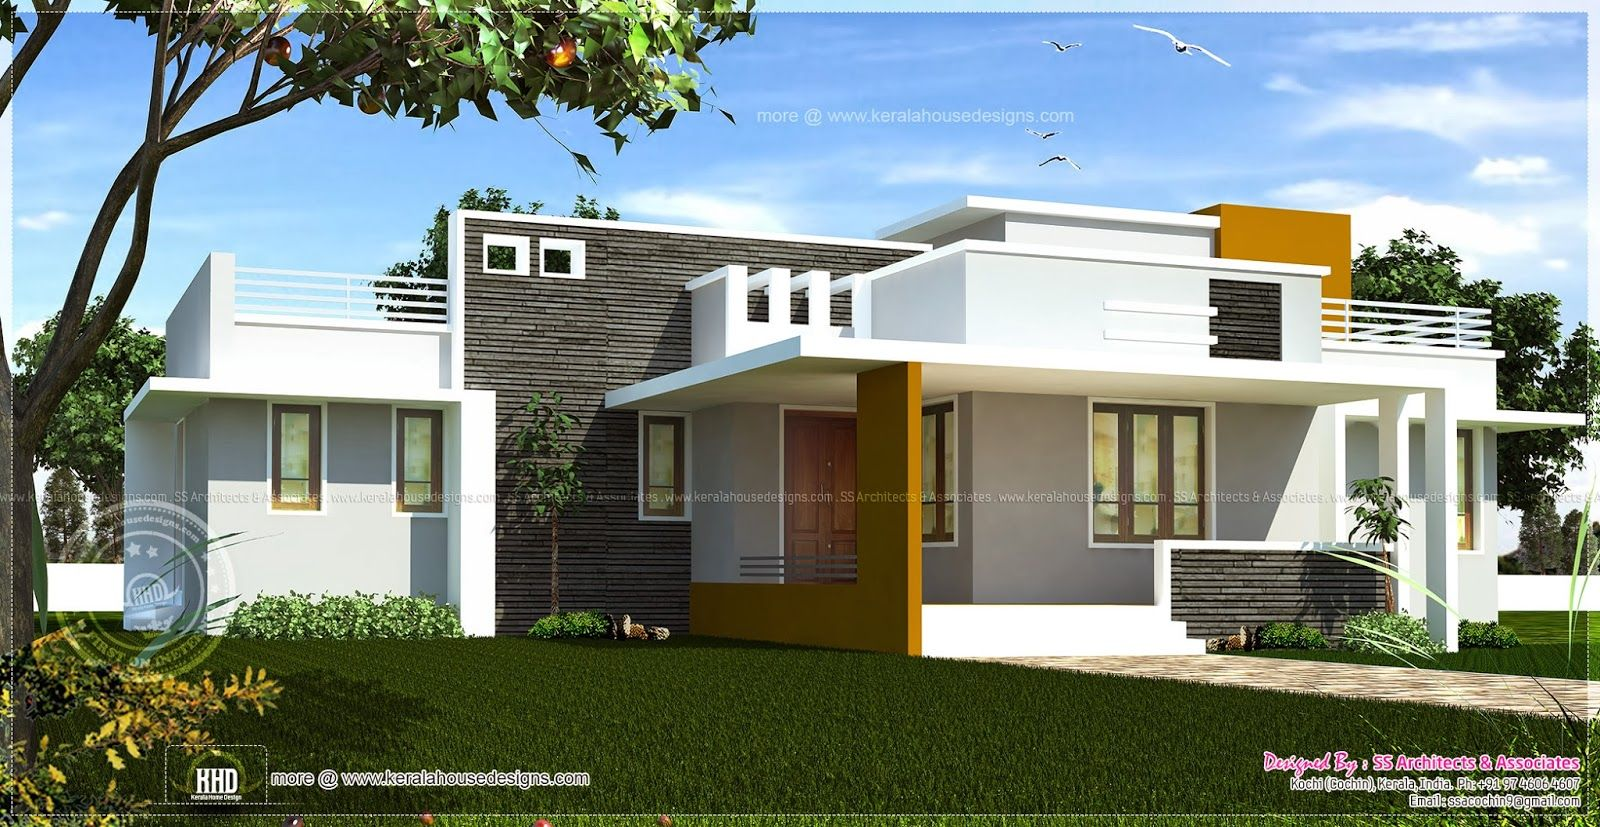 Excellent single home designs single floor contemporary for Single floor house elevation designs